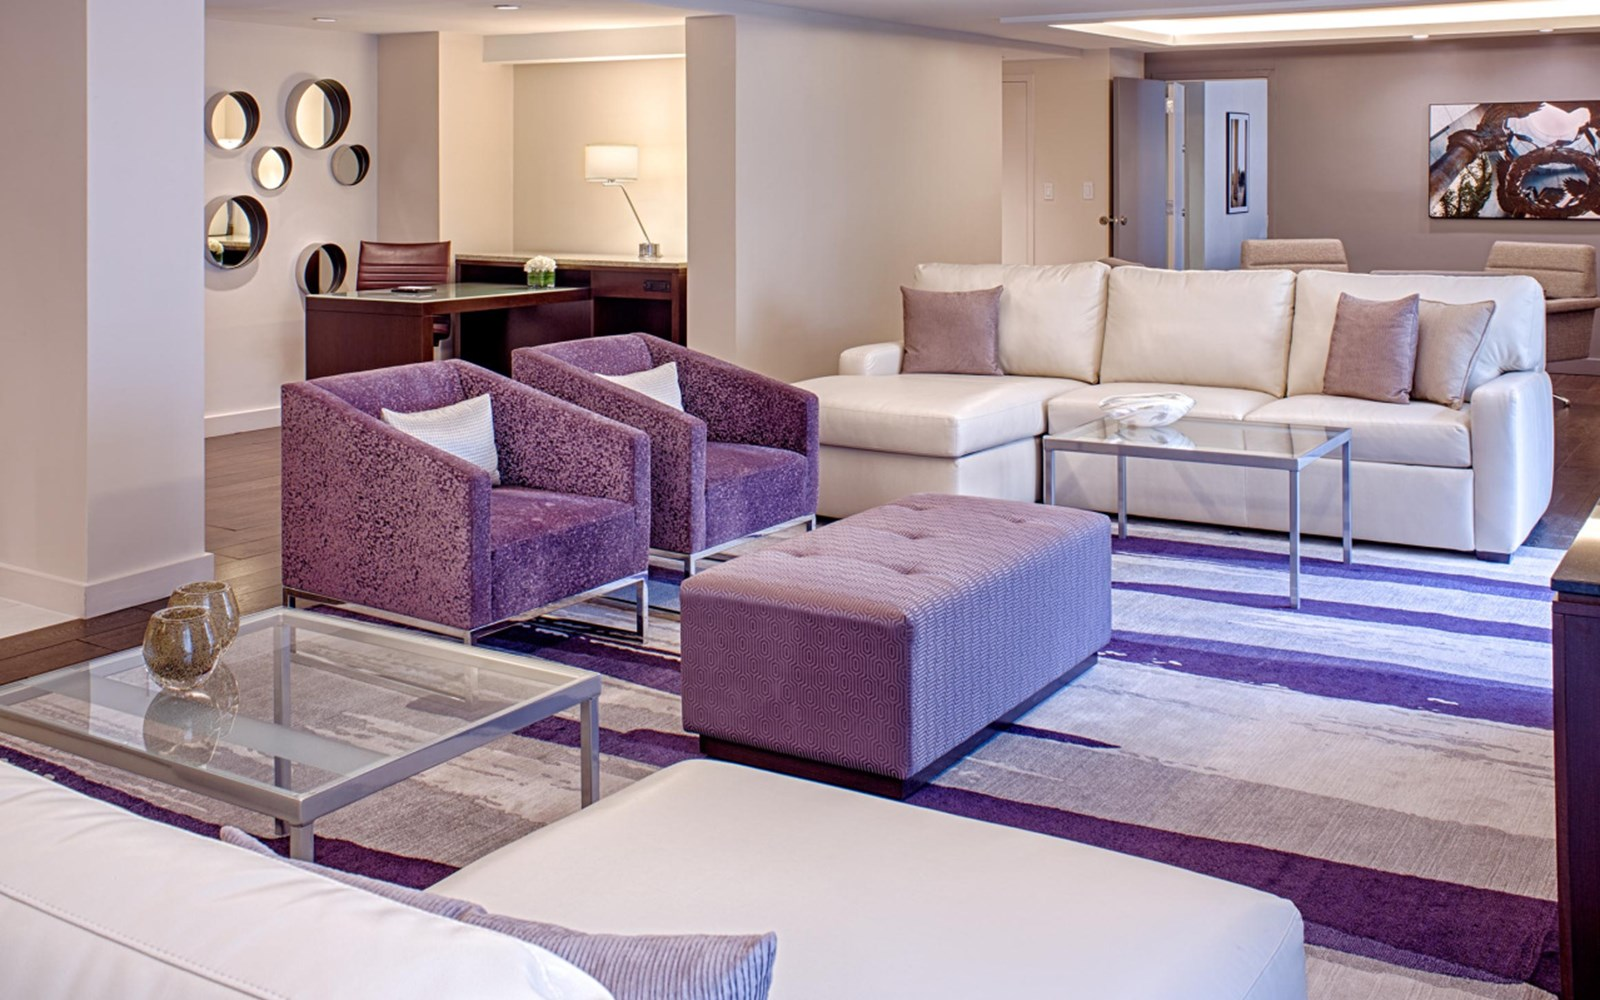 Suite with purple and ivory couches, TV